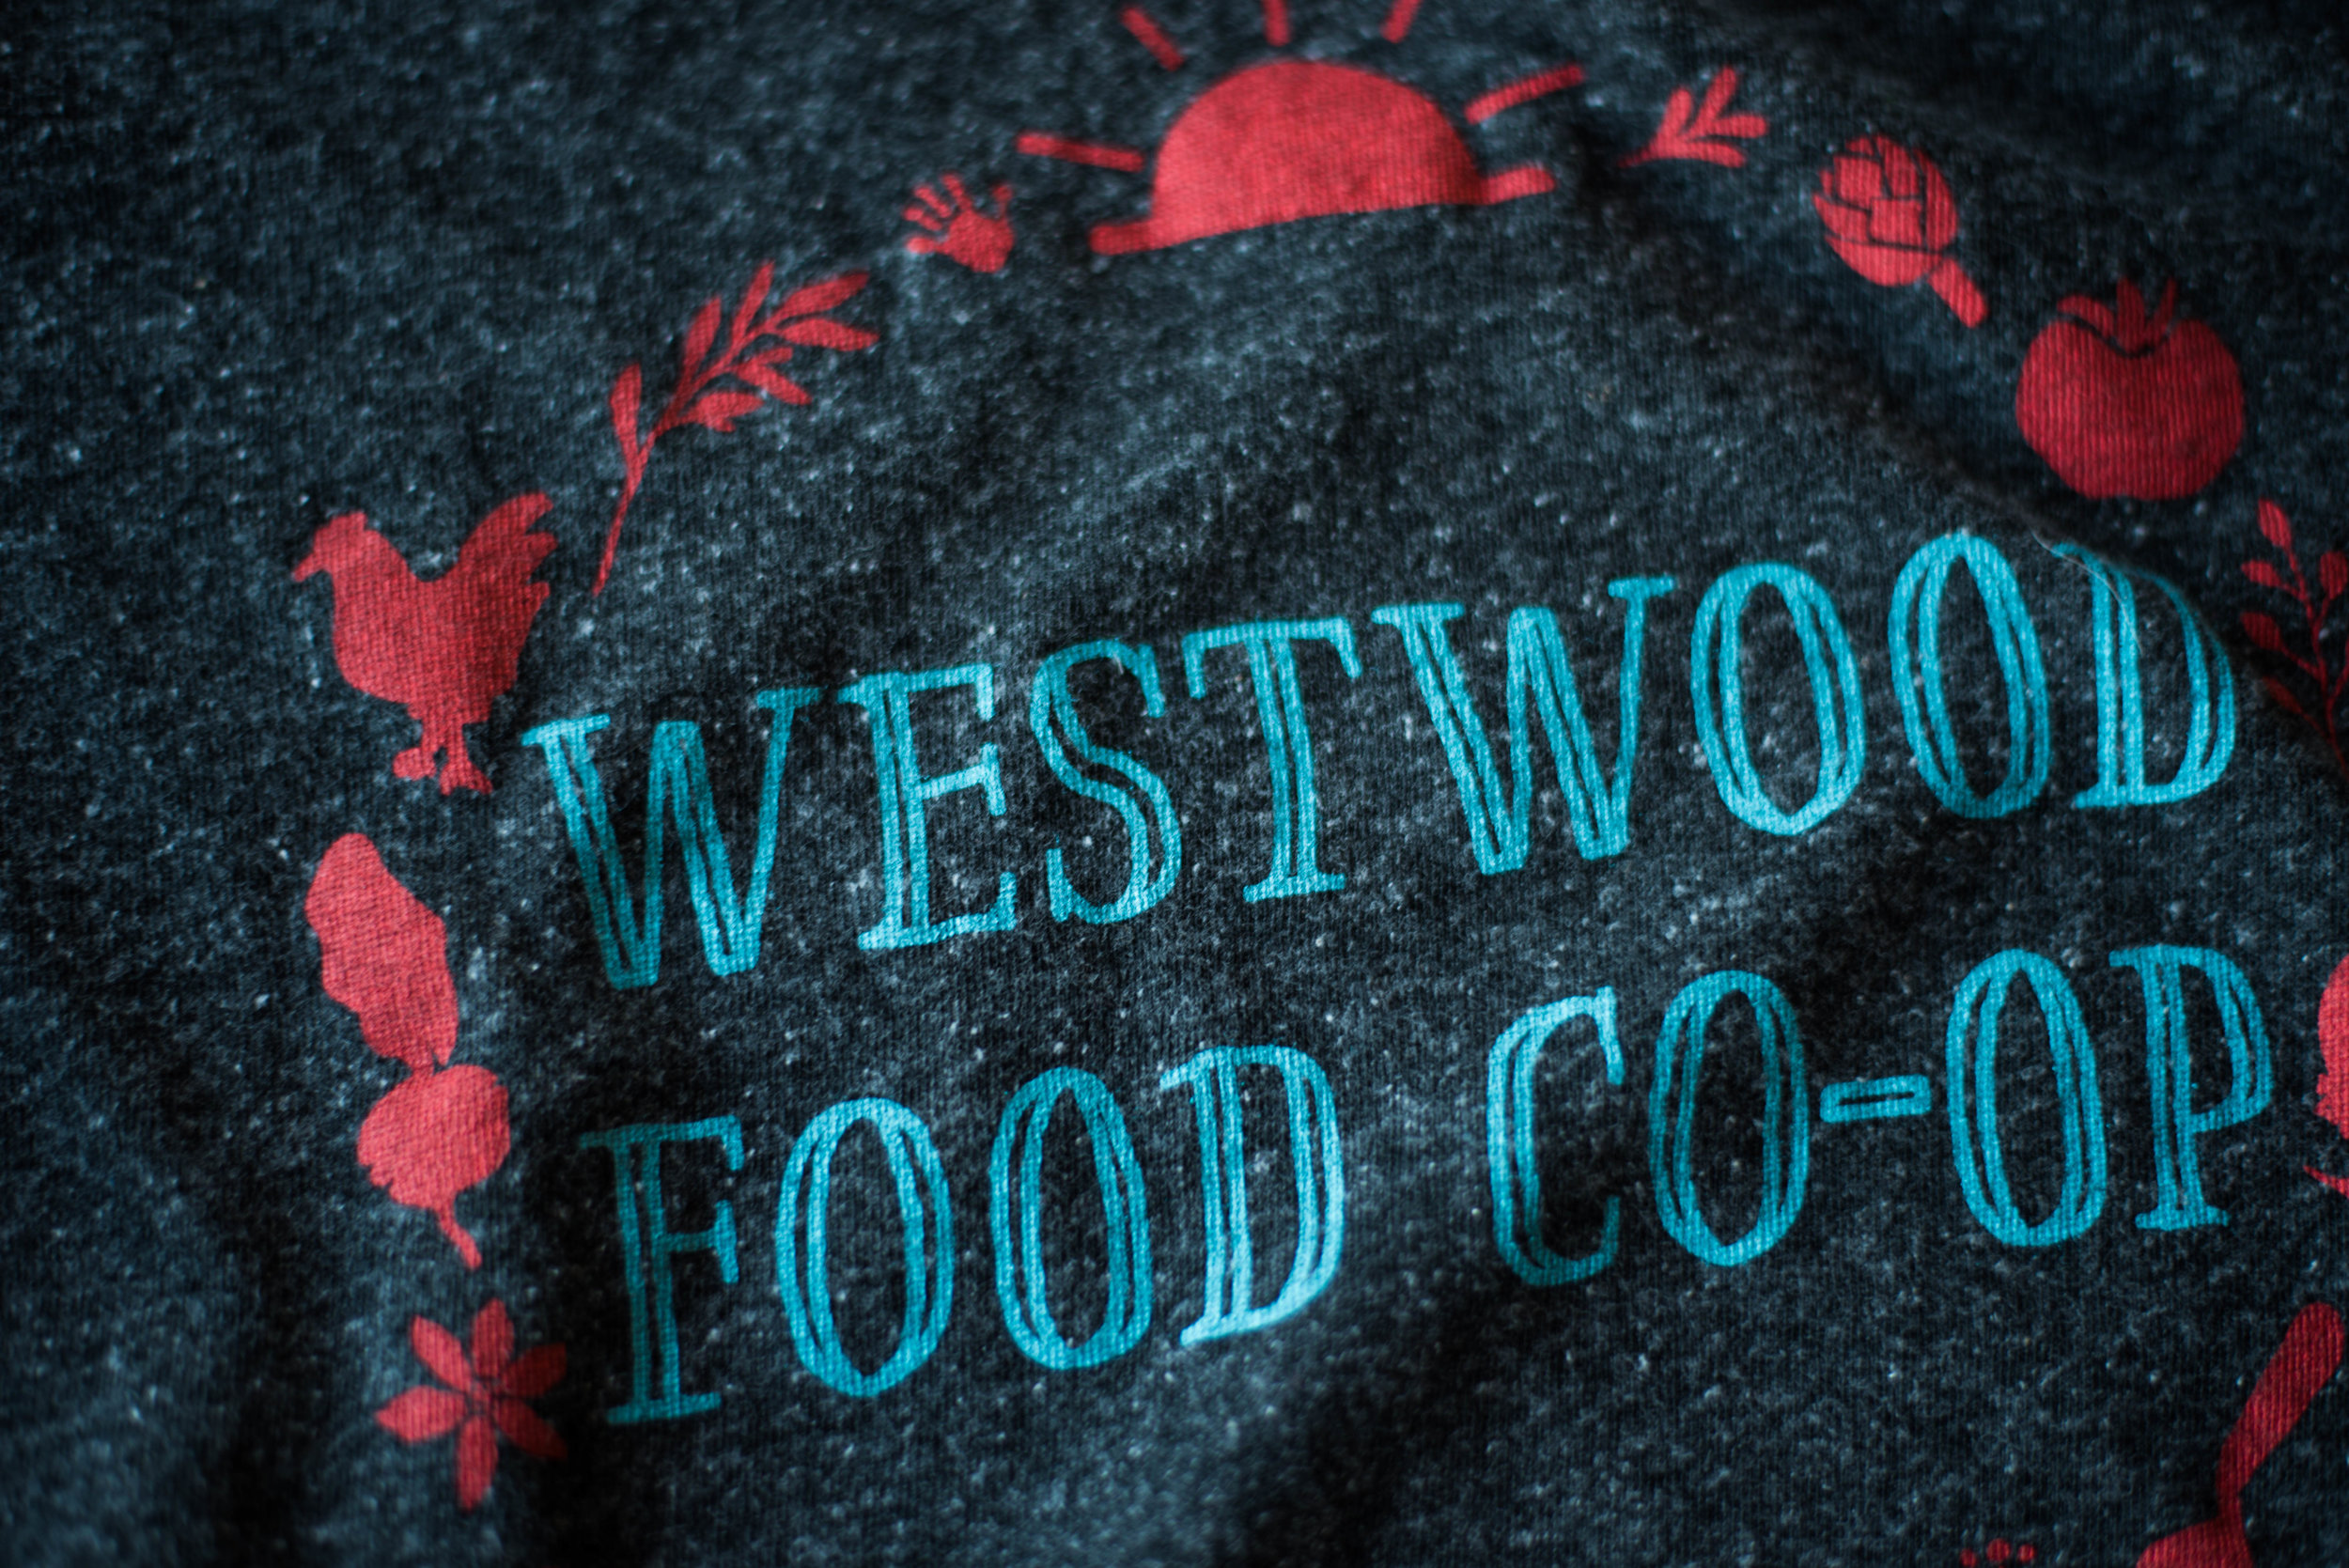 Westwood Food Co-Op. Print method SOFT. Screen printed on Royal Apparel shirt. Printed by A Small Print Shop.